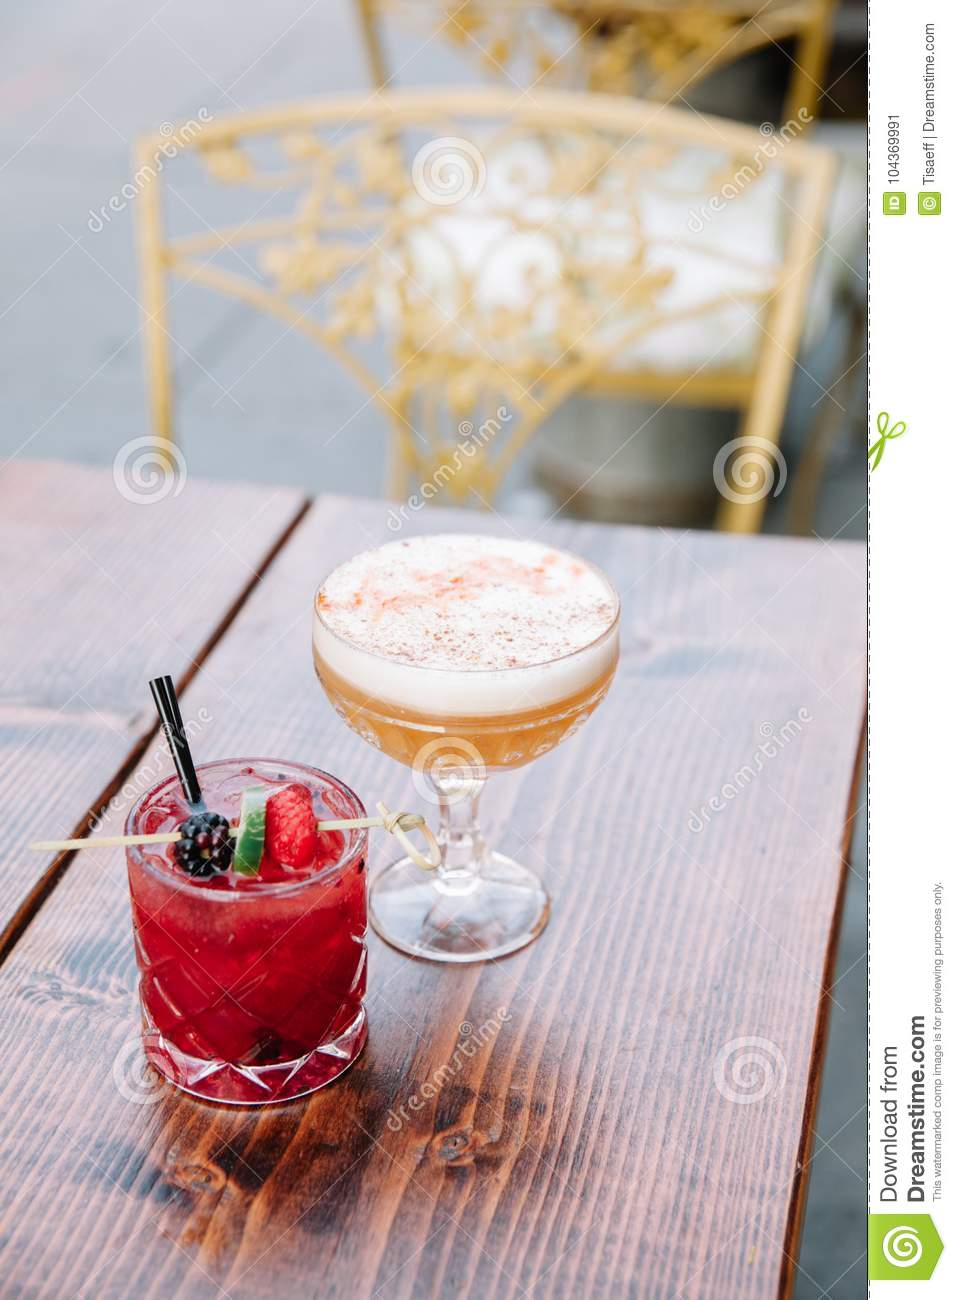 Two colorful alcoholic cocktails on a wooden table outdoors